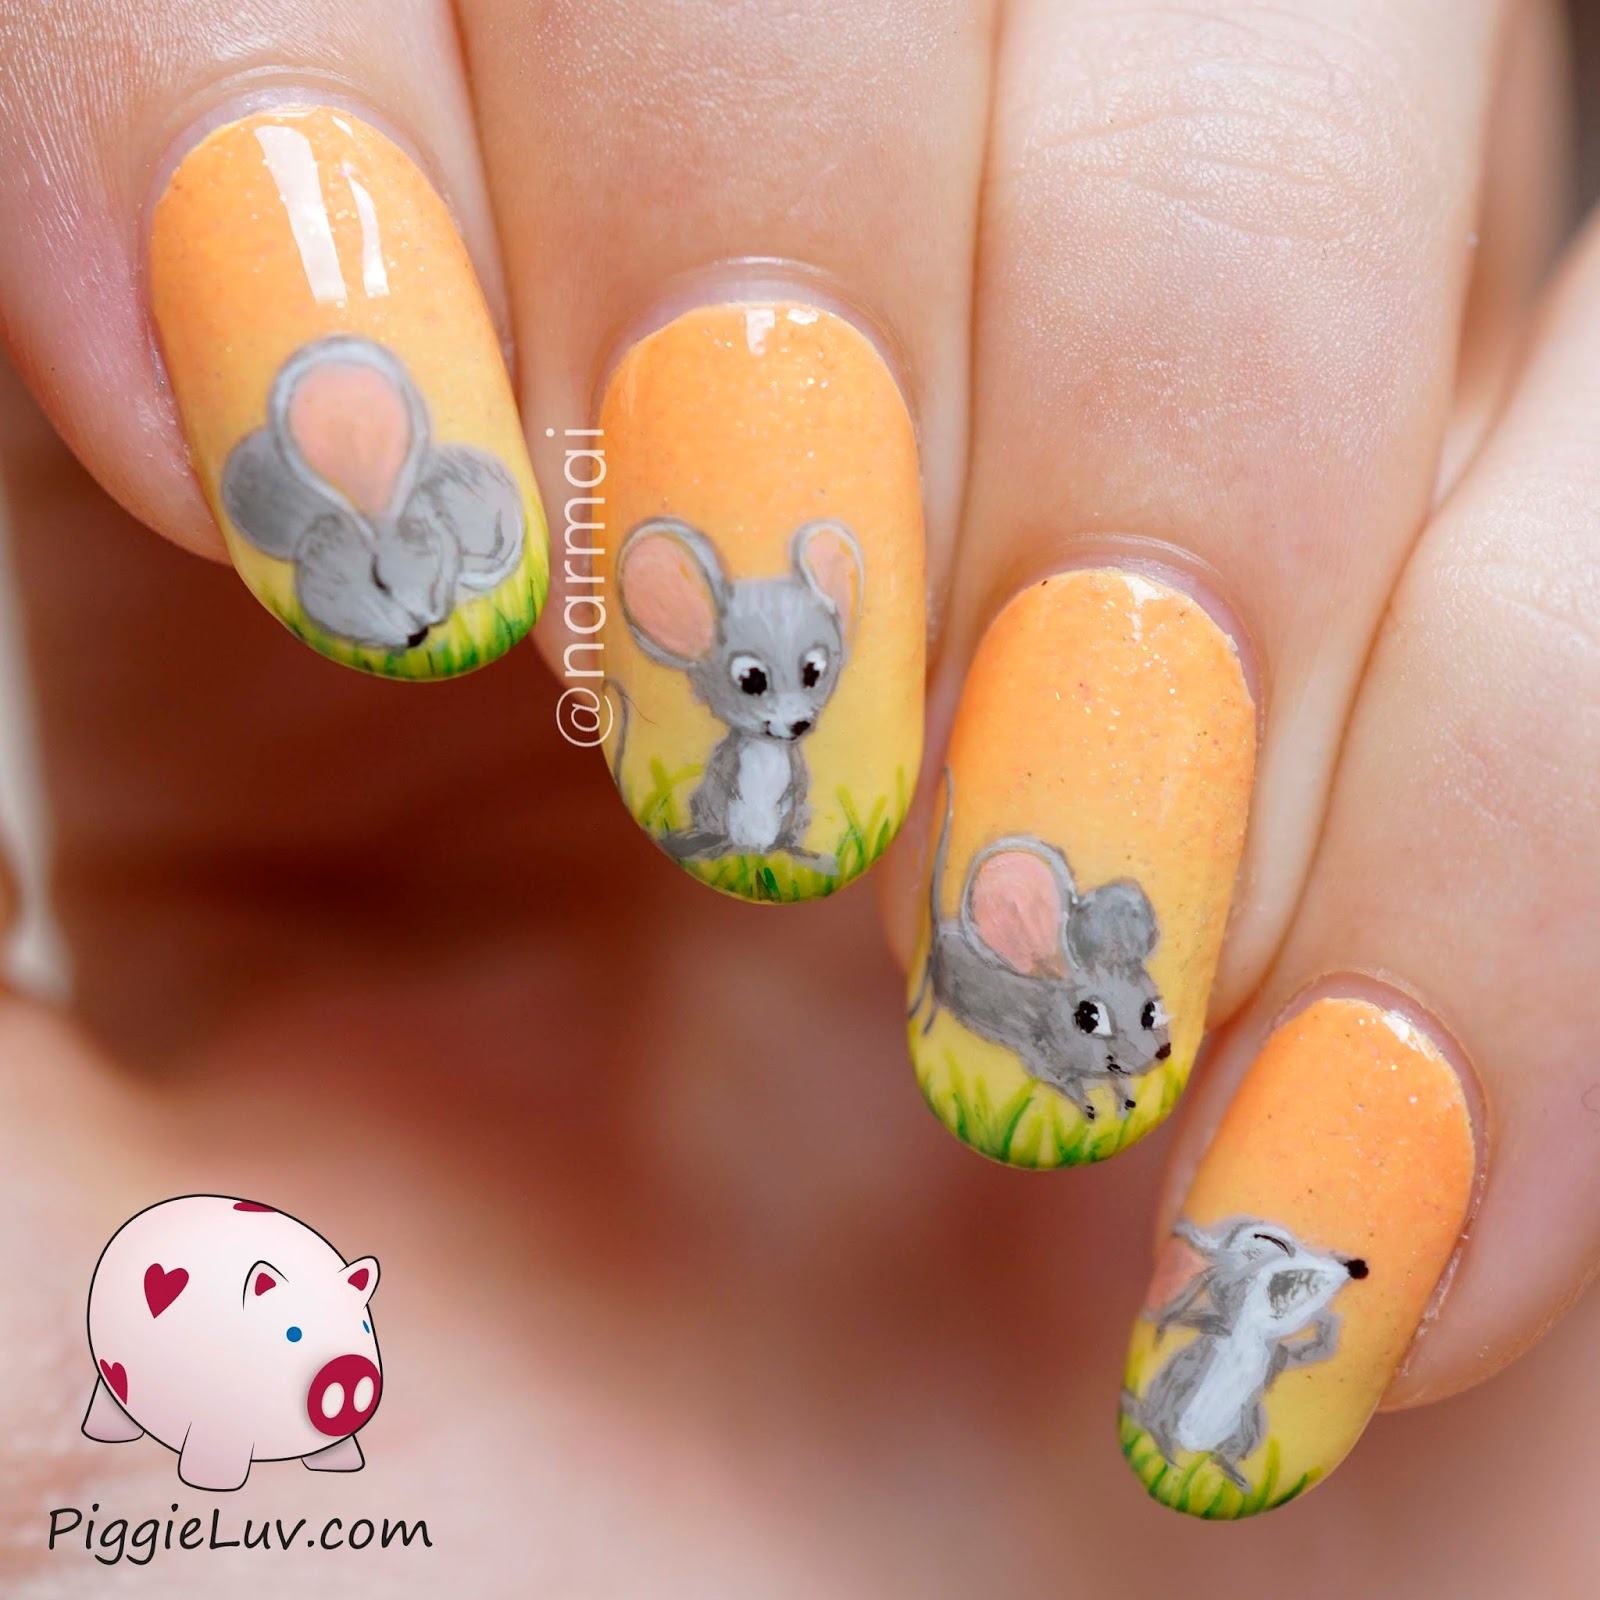 PiggieLuv: Freehand adorable mouse nail art